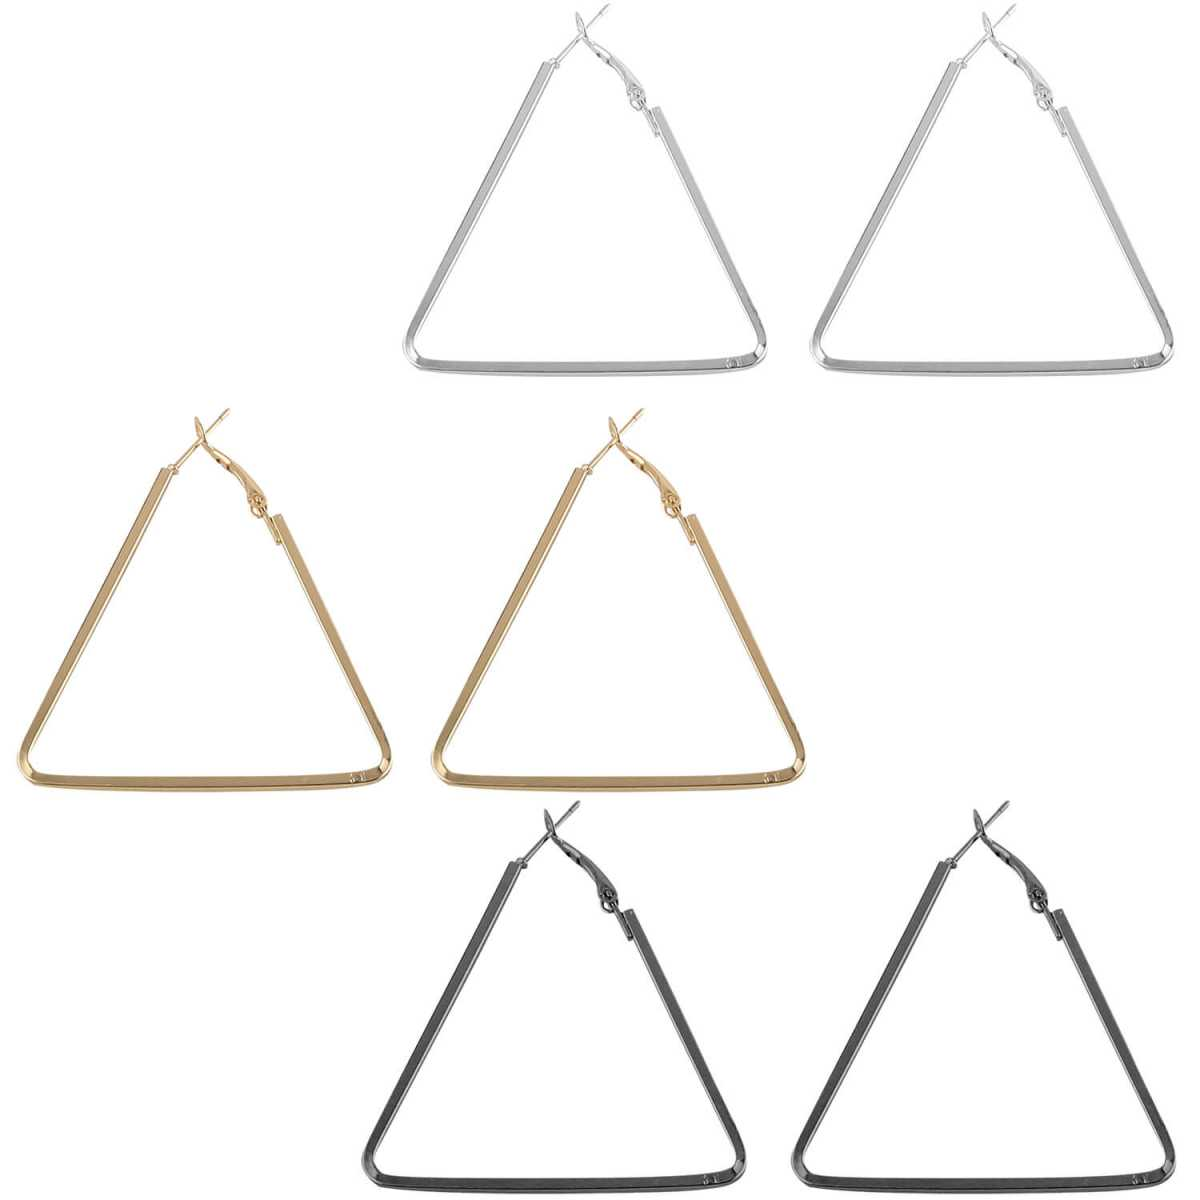 SILVER SHINE Attractive Stylish Triangle Shape Earring Combo For Women Girl.